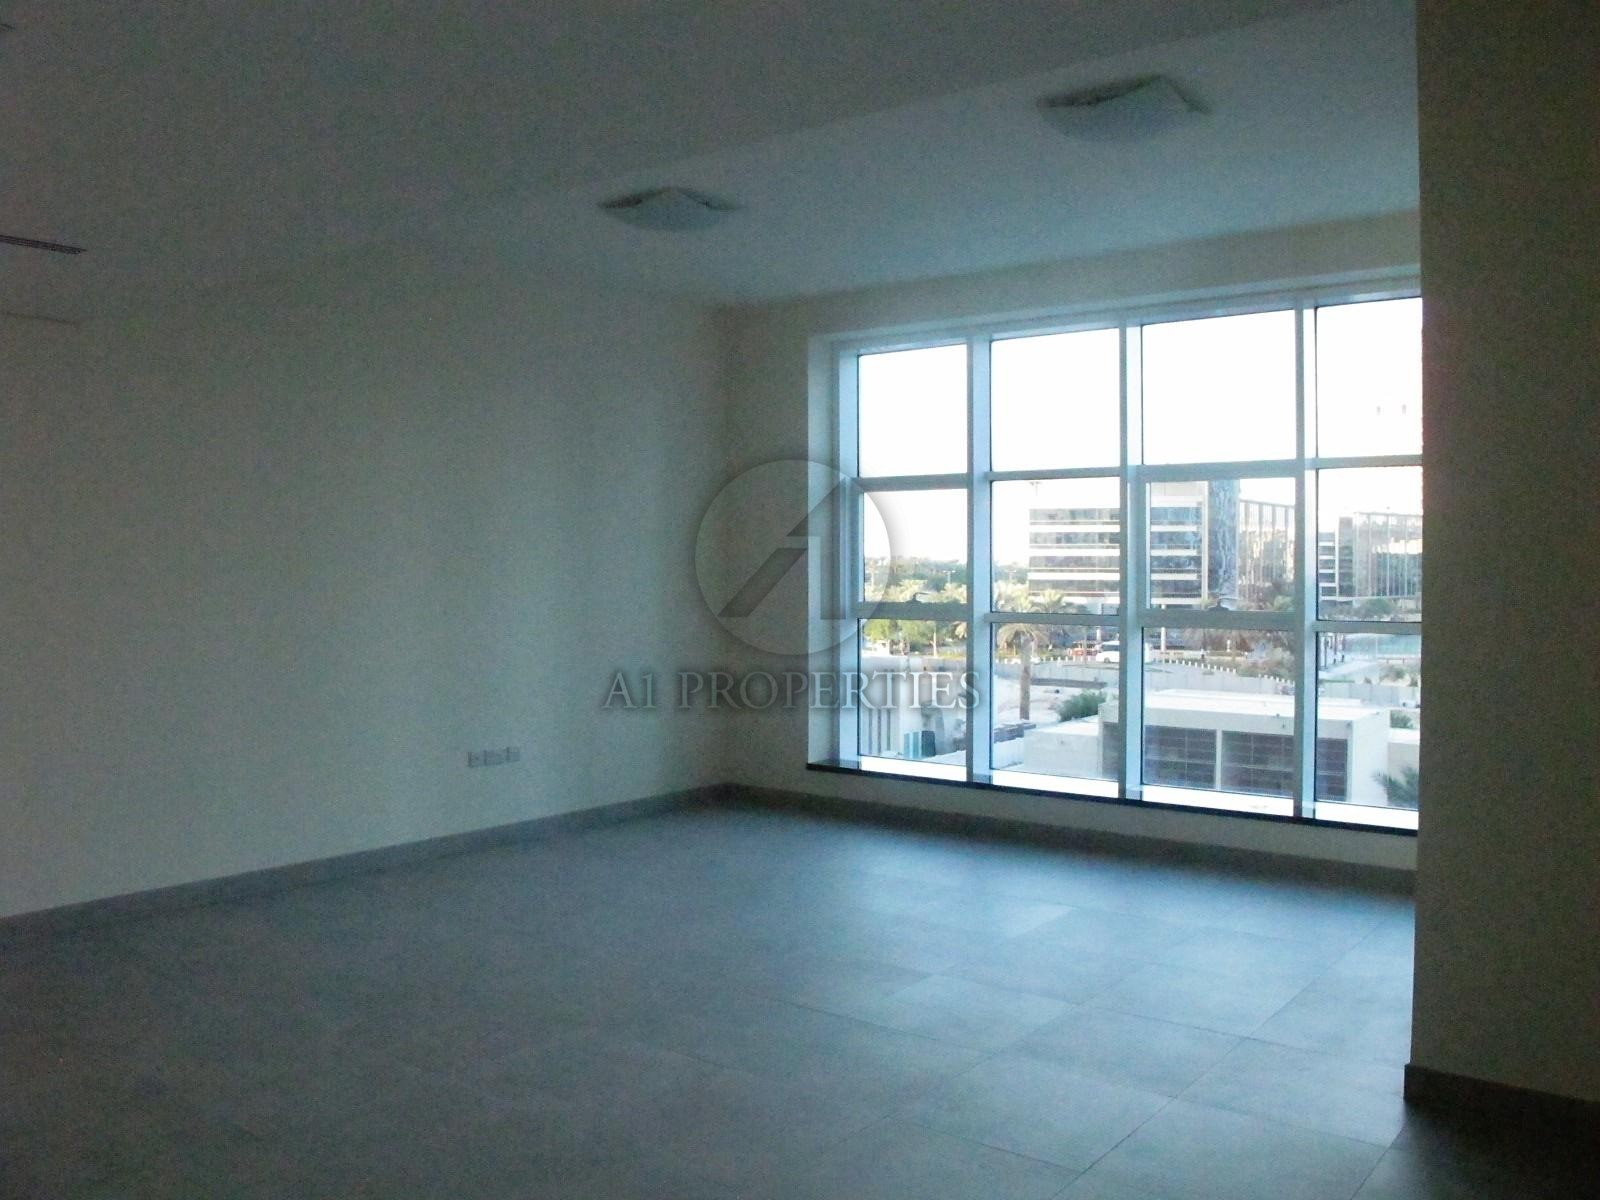 Vacant Bright Apartment with Good Layout